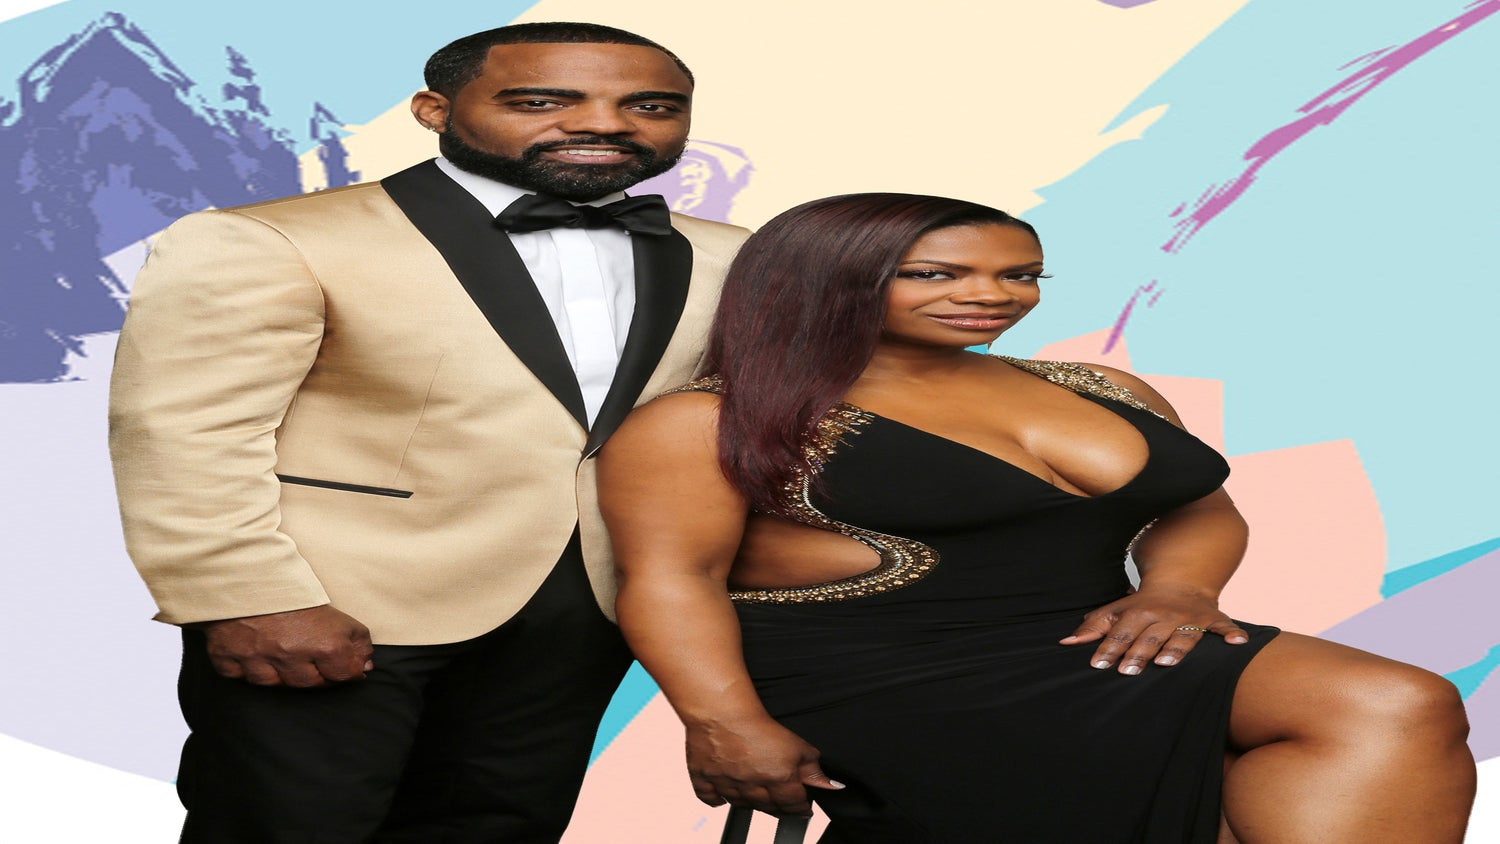 Kandi Burruss Explains Why Her Marriage To Todd Tucker Works: 'I Don't Get Bored With Him'